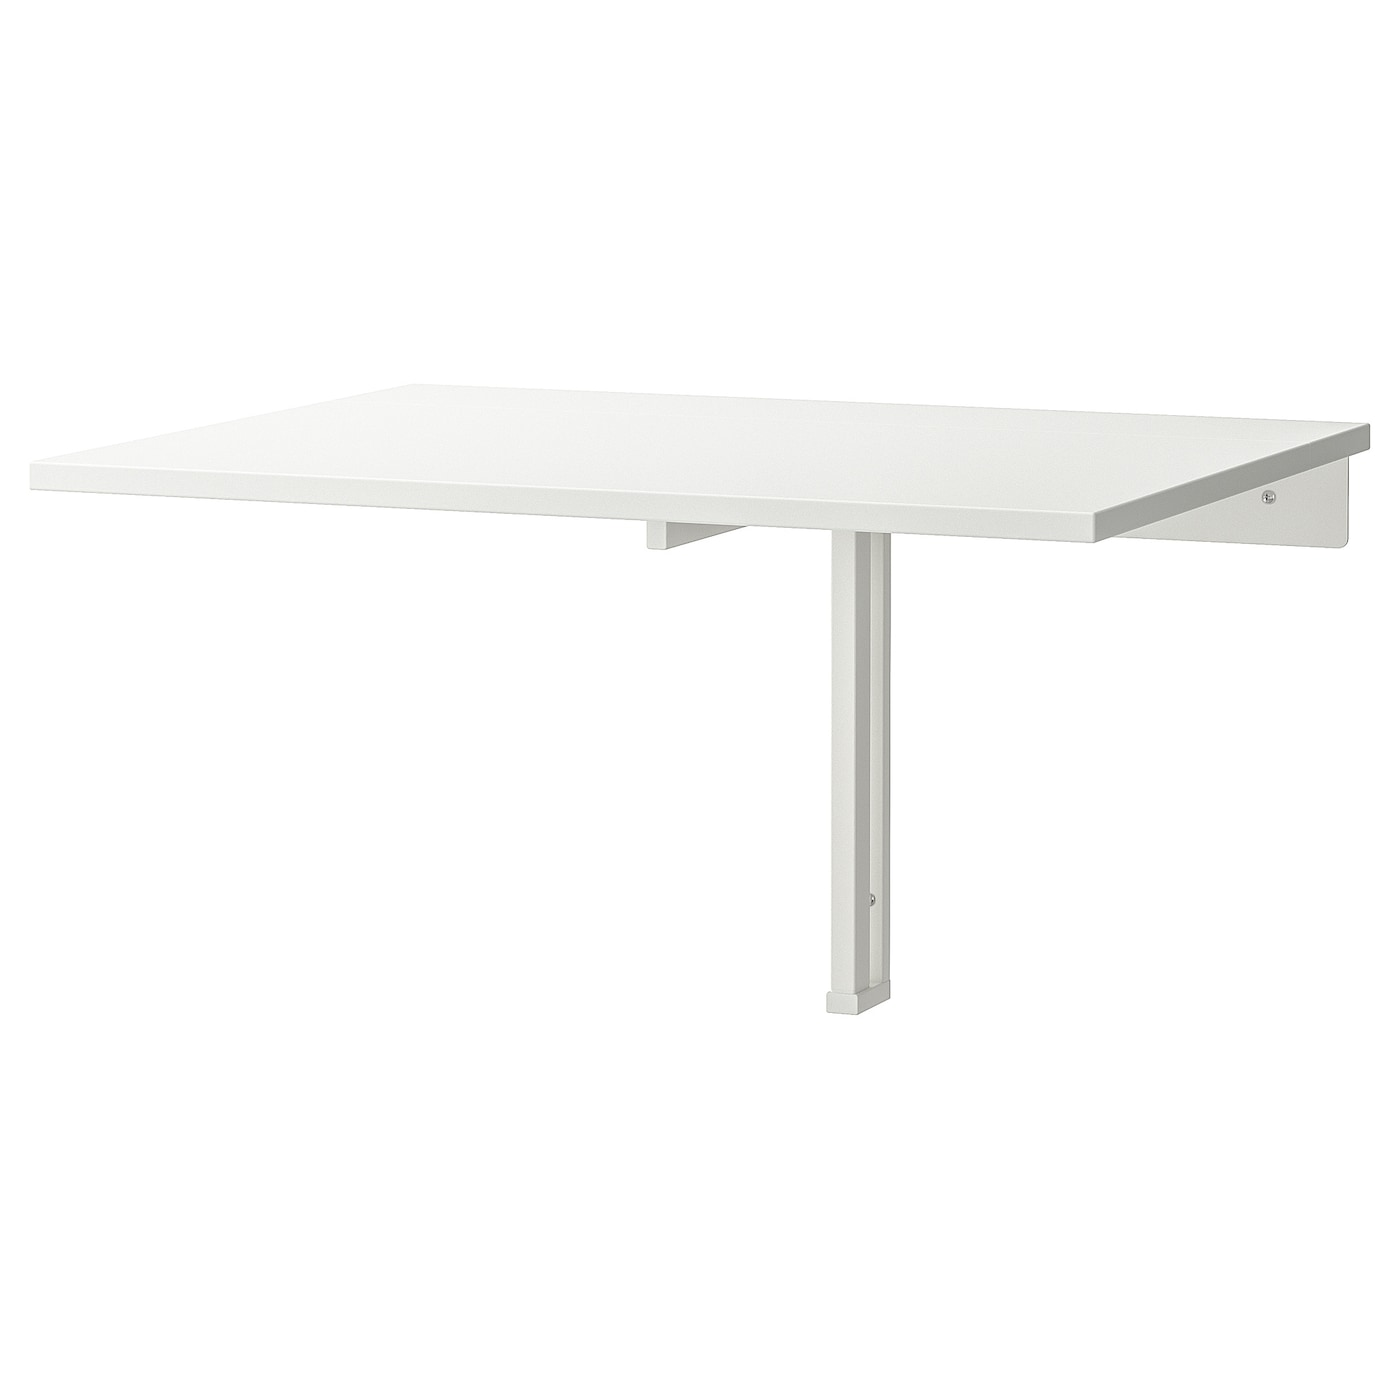 Altezza Cucina Ikea norberg wall-mounted drop-leaf table - white 74x60 cm